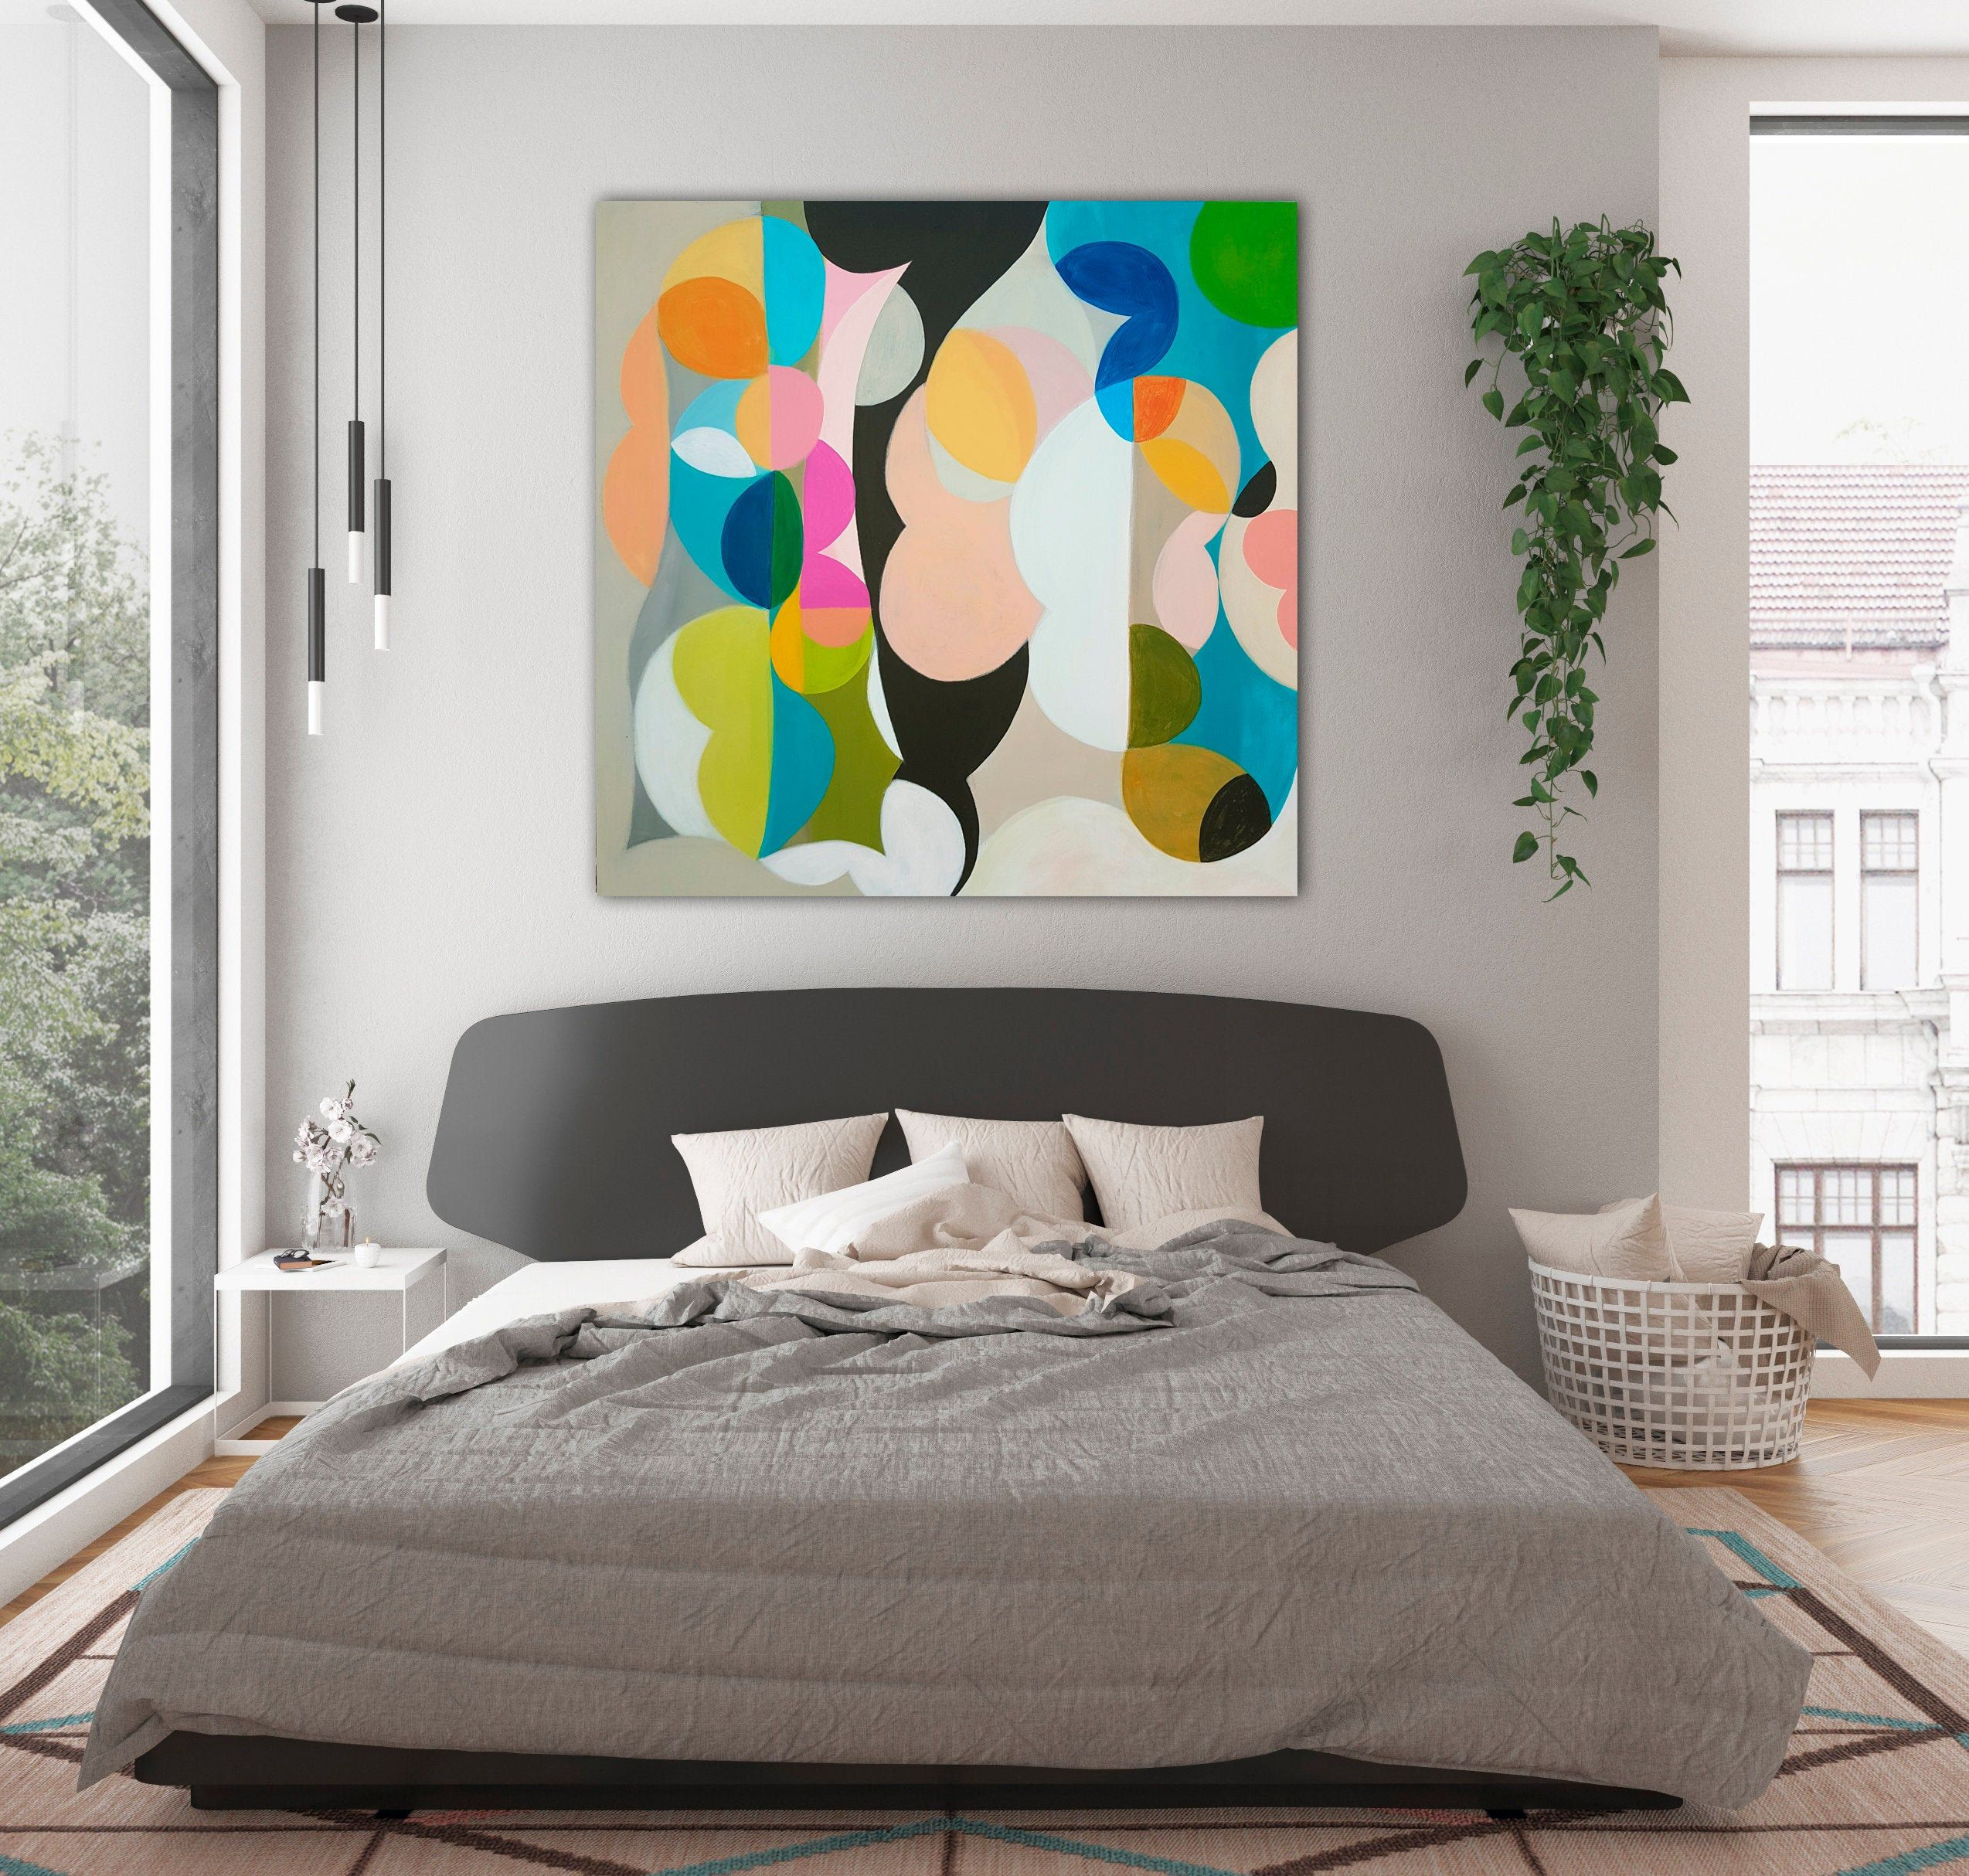 Original Colorful Pop Wall Art Geometric Painting With Light Etsy In 2020 Geometric Painting Abstract Canvas Art Colorful Abstract Painting